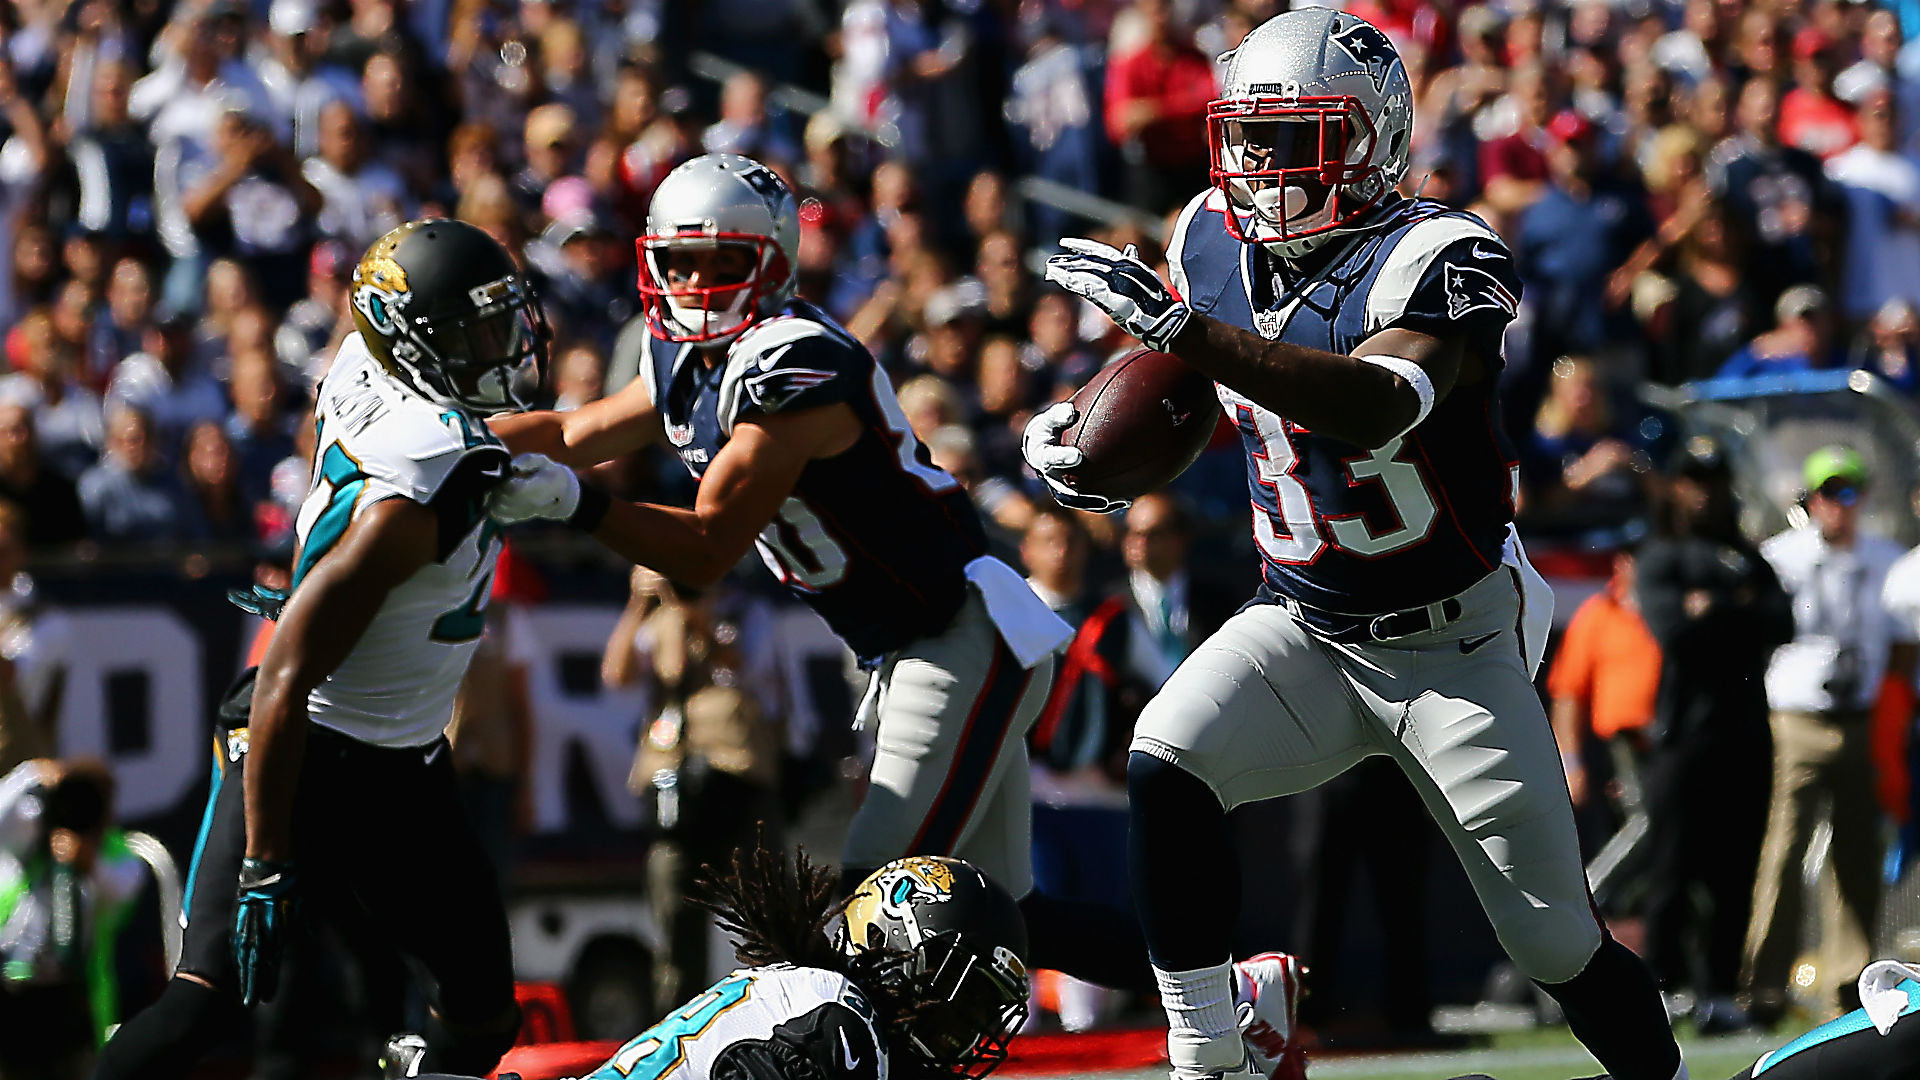 Dion Lewis - 092715 - Getty - FTR